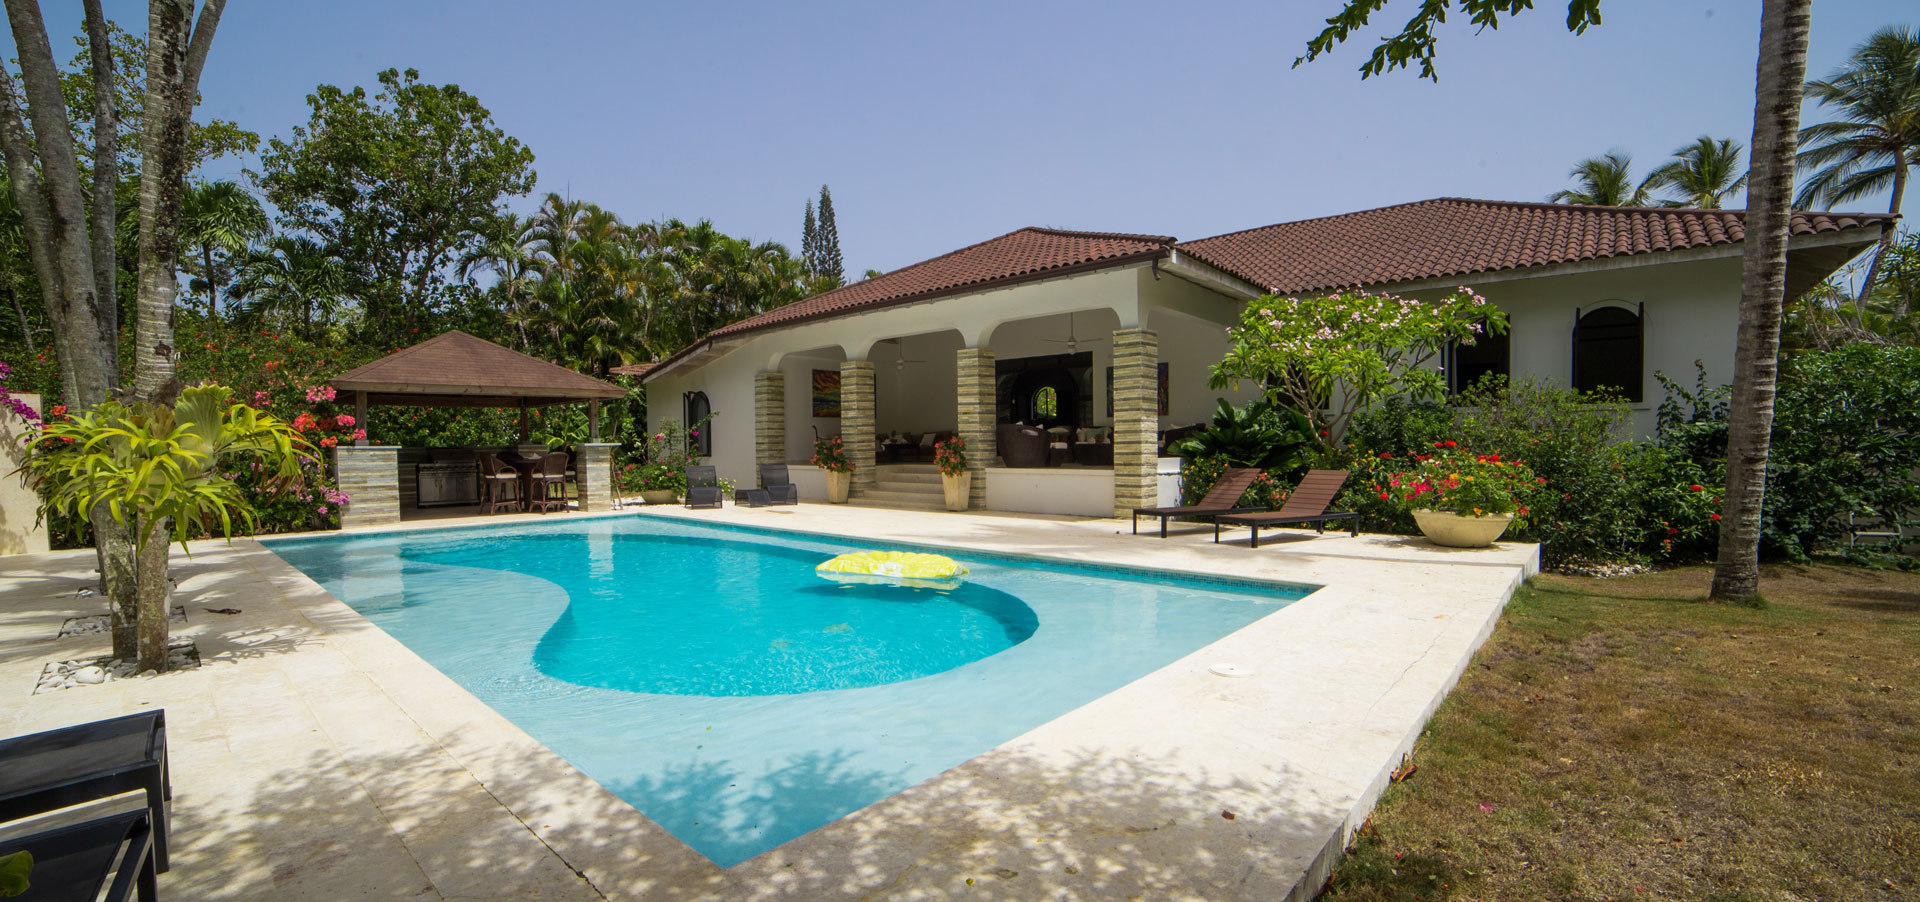 Beautiful villa in p in the Dominican Republic